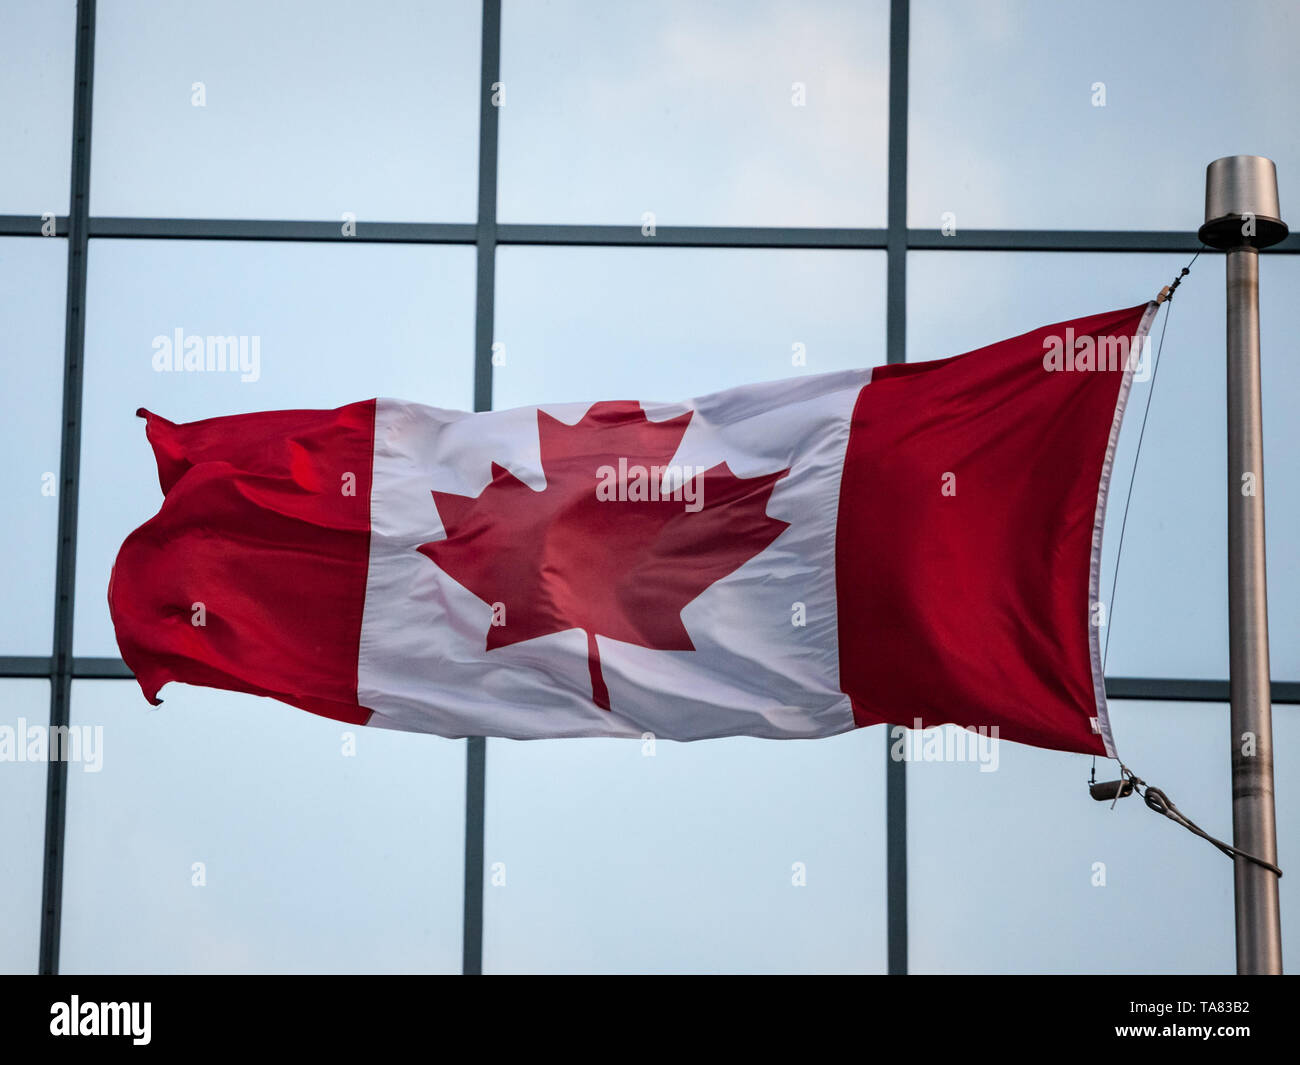 Canadian flag in front of a business building in Ottawa, Ontario, Canada. Ottawa is the capital city of Canada, and one of the main economic, politica - Stock Image